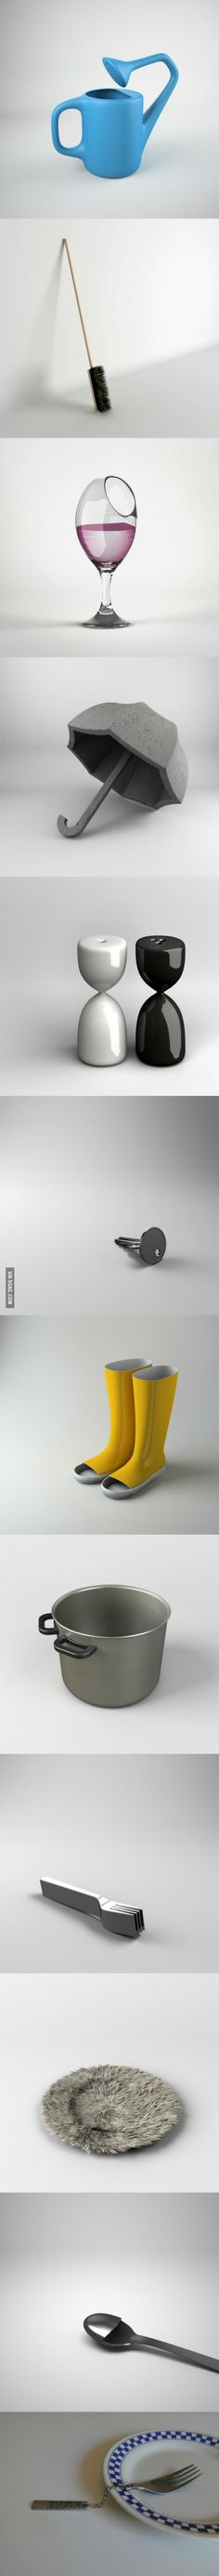 Designed to be useless, ideal for April Fools gifts